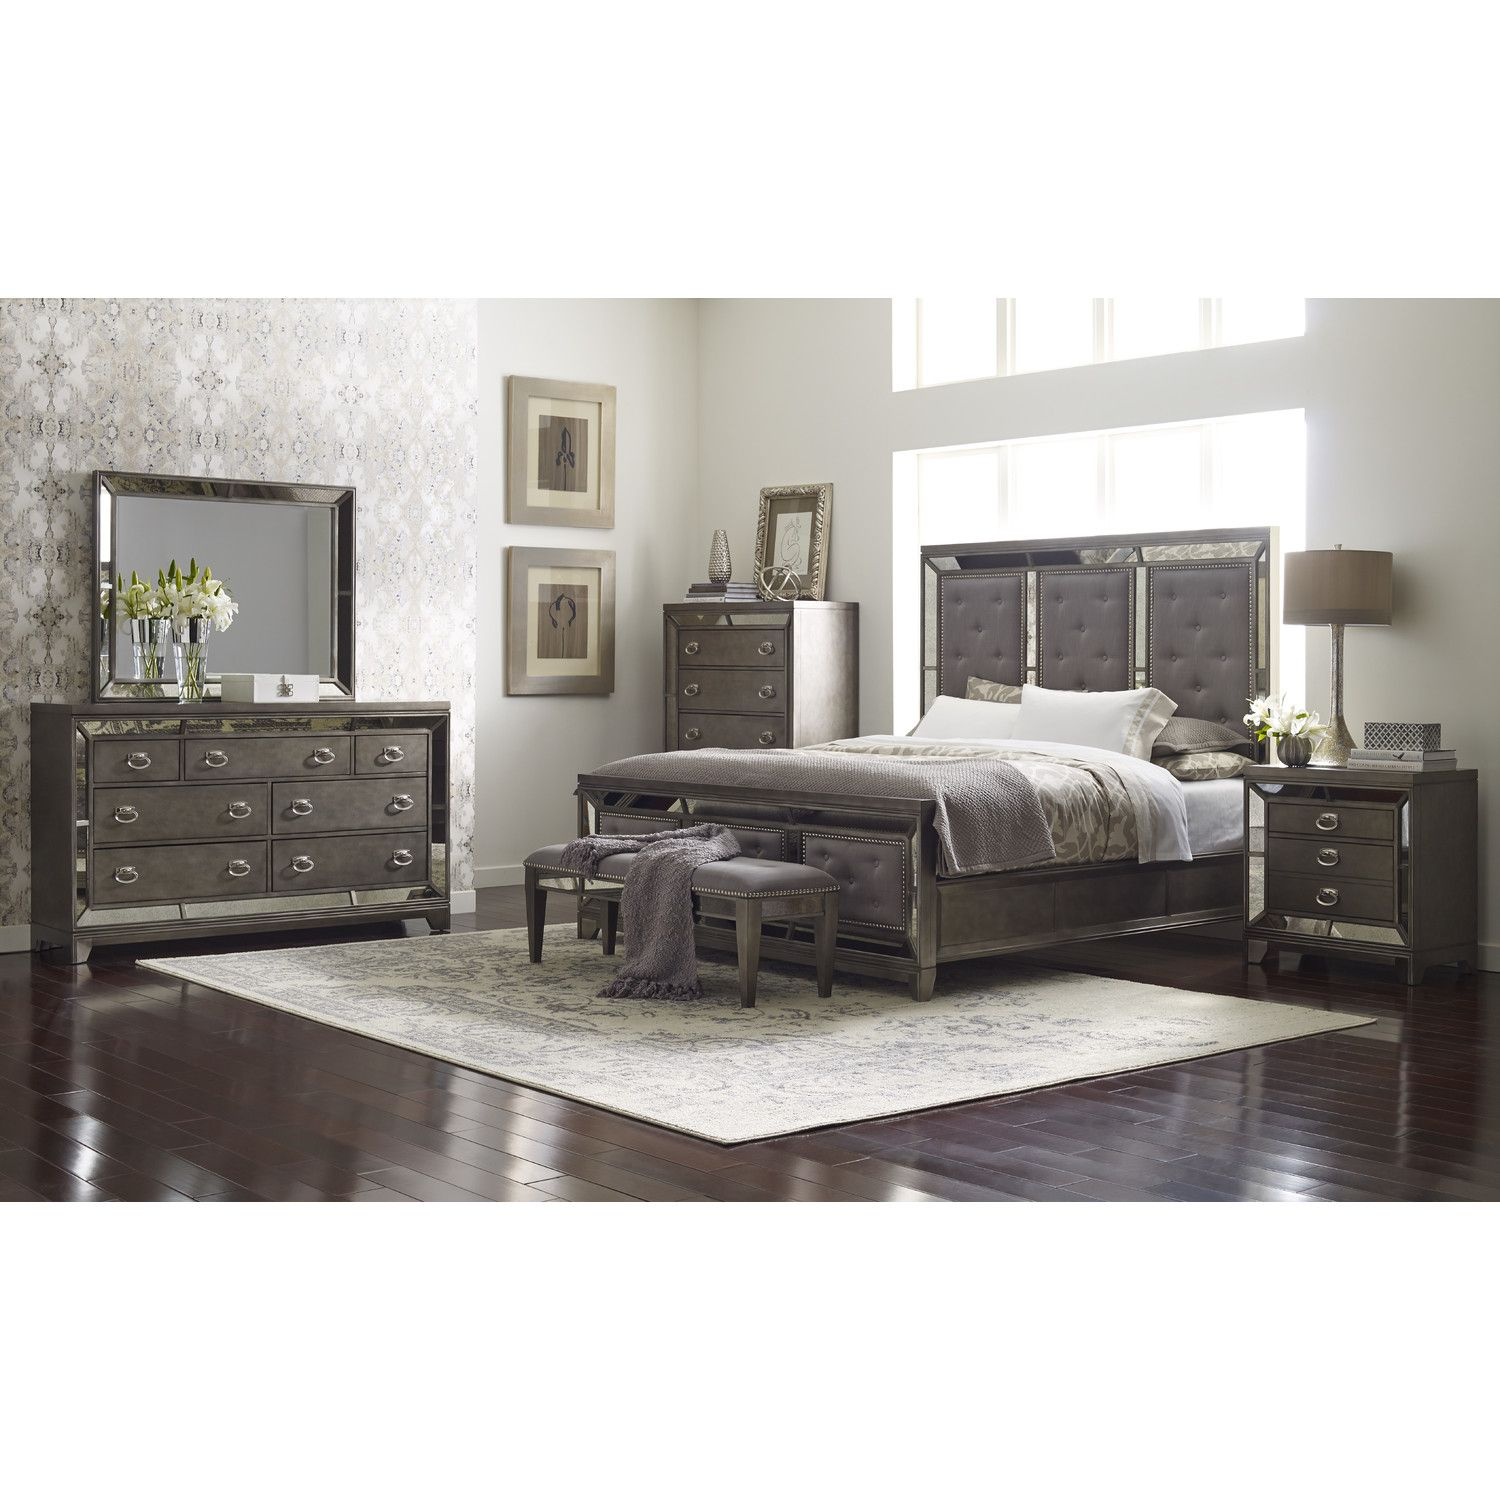 shop wayfair for bedroom sets to match every style and budget